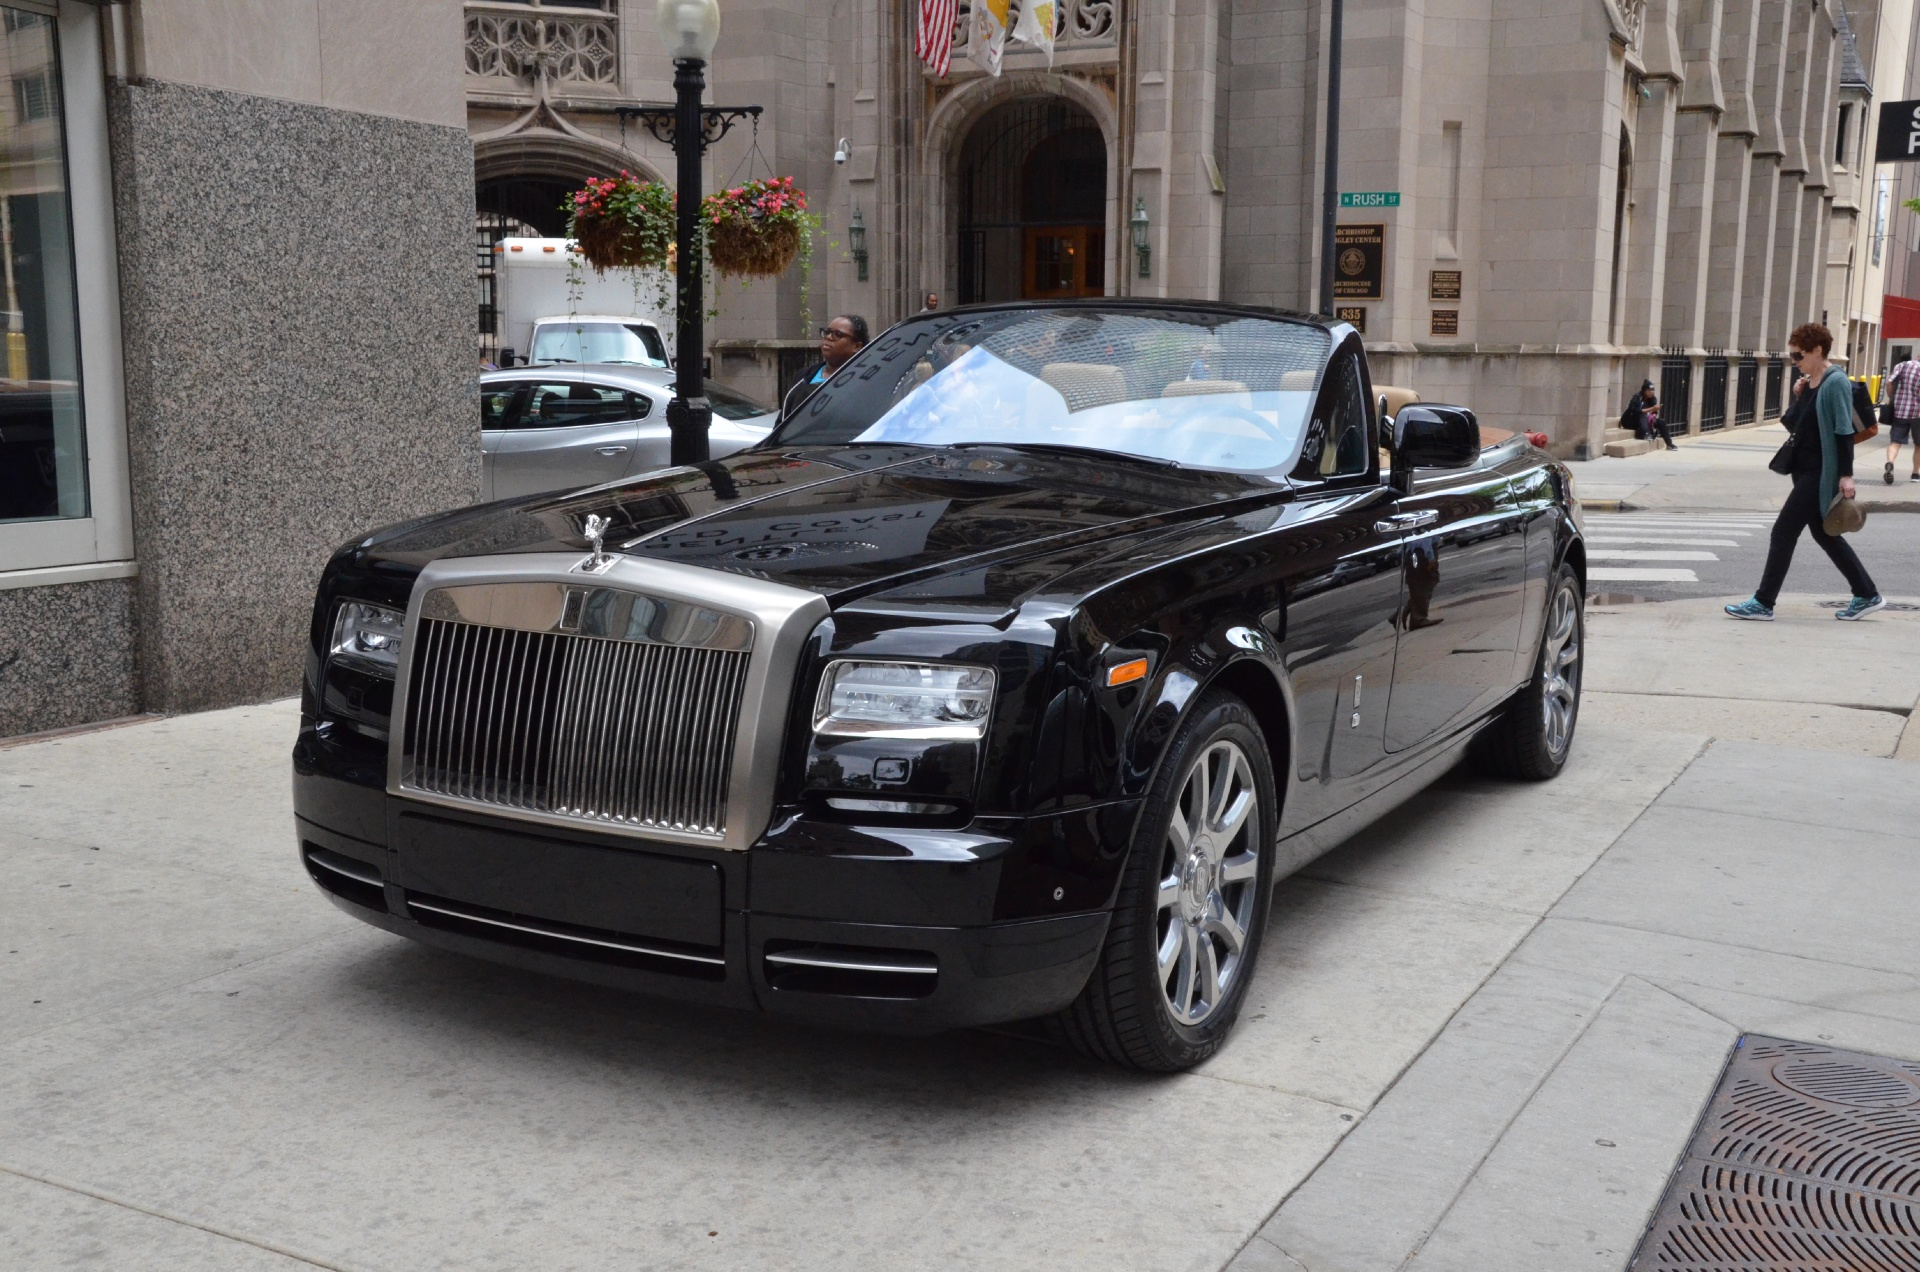 2014 Rolls royce Phantom Drophead Coupe #4